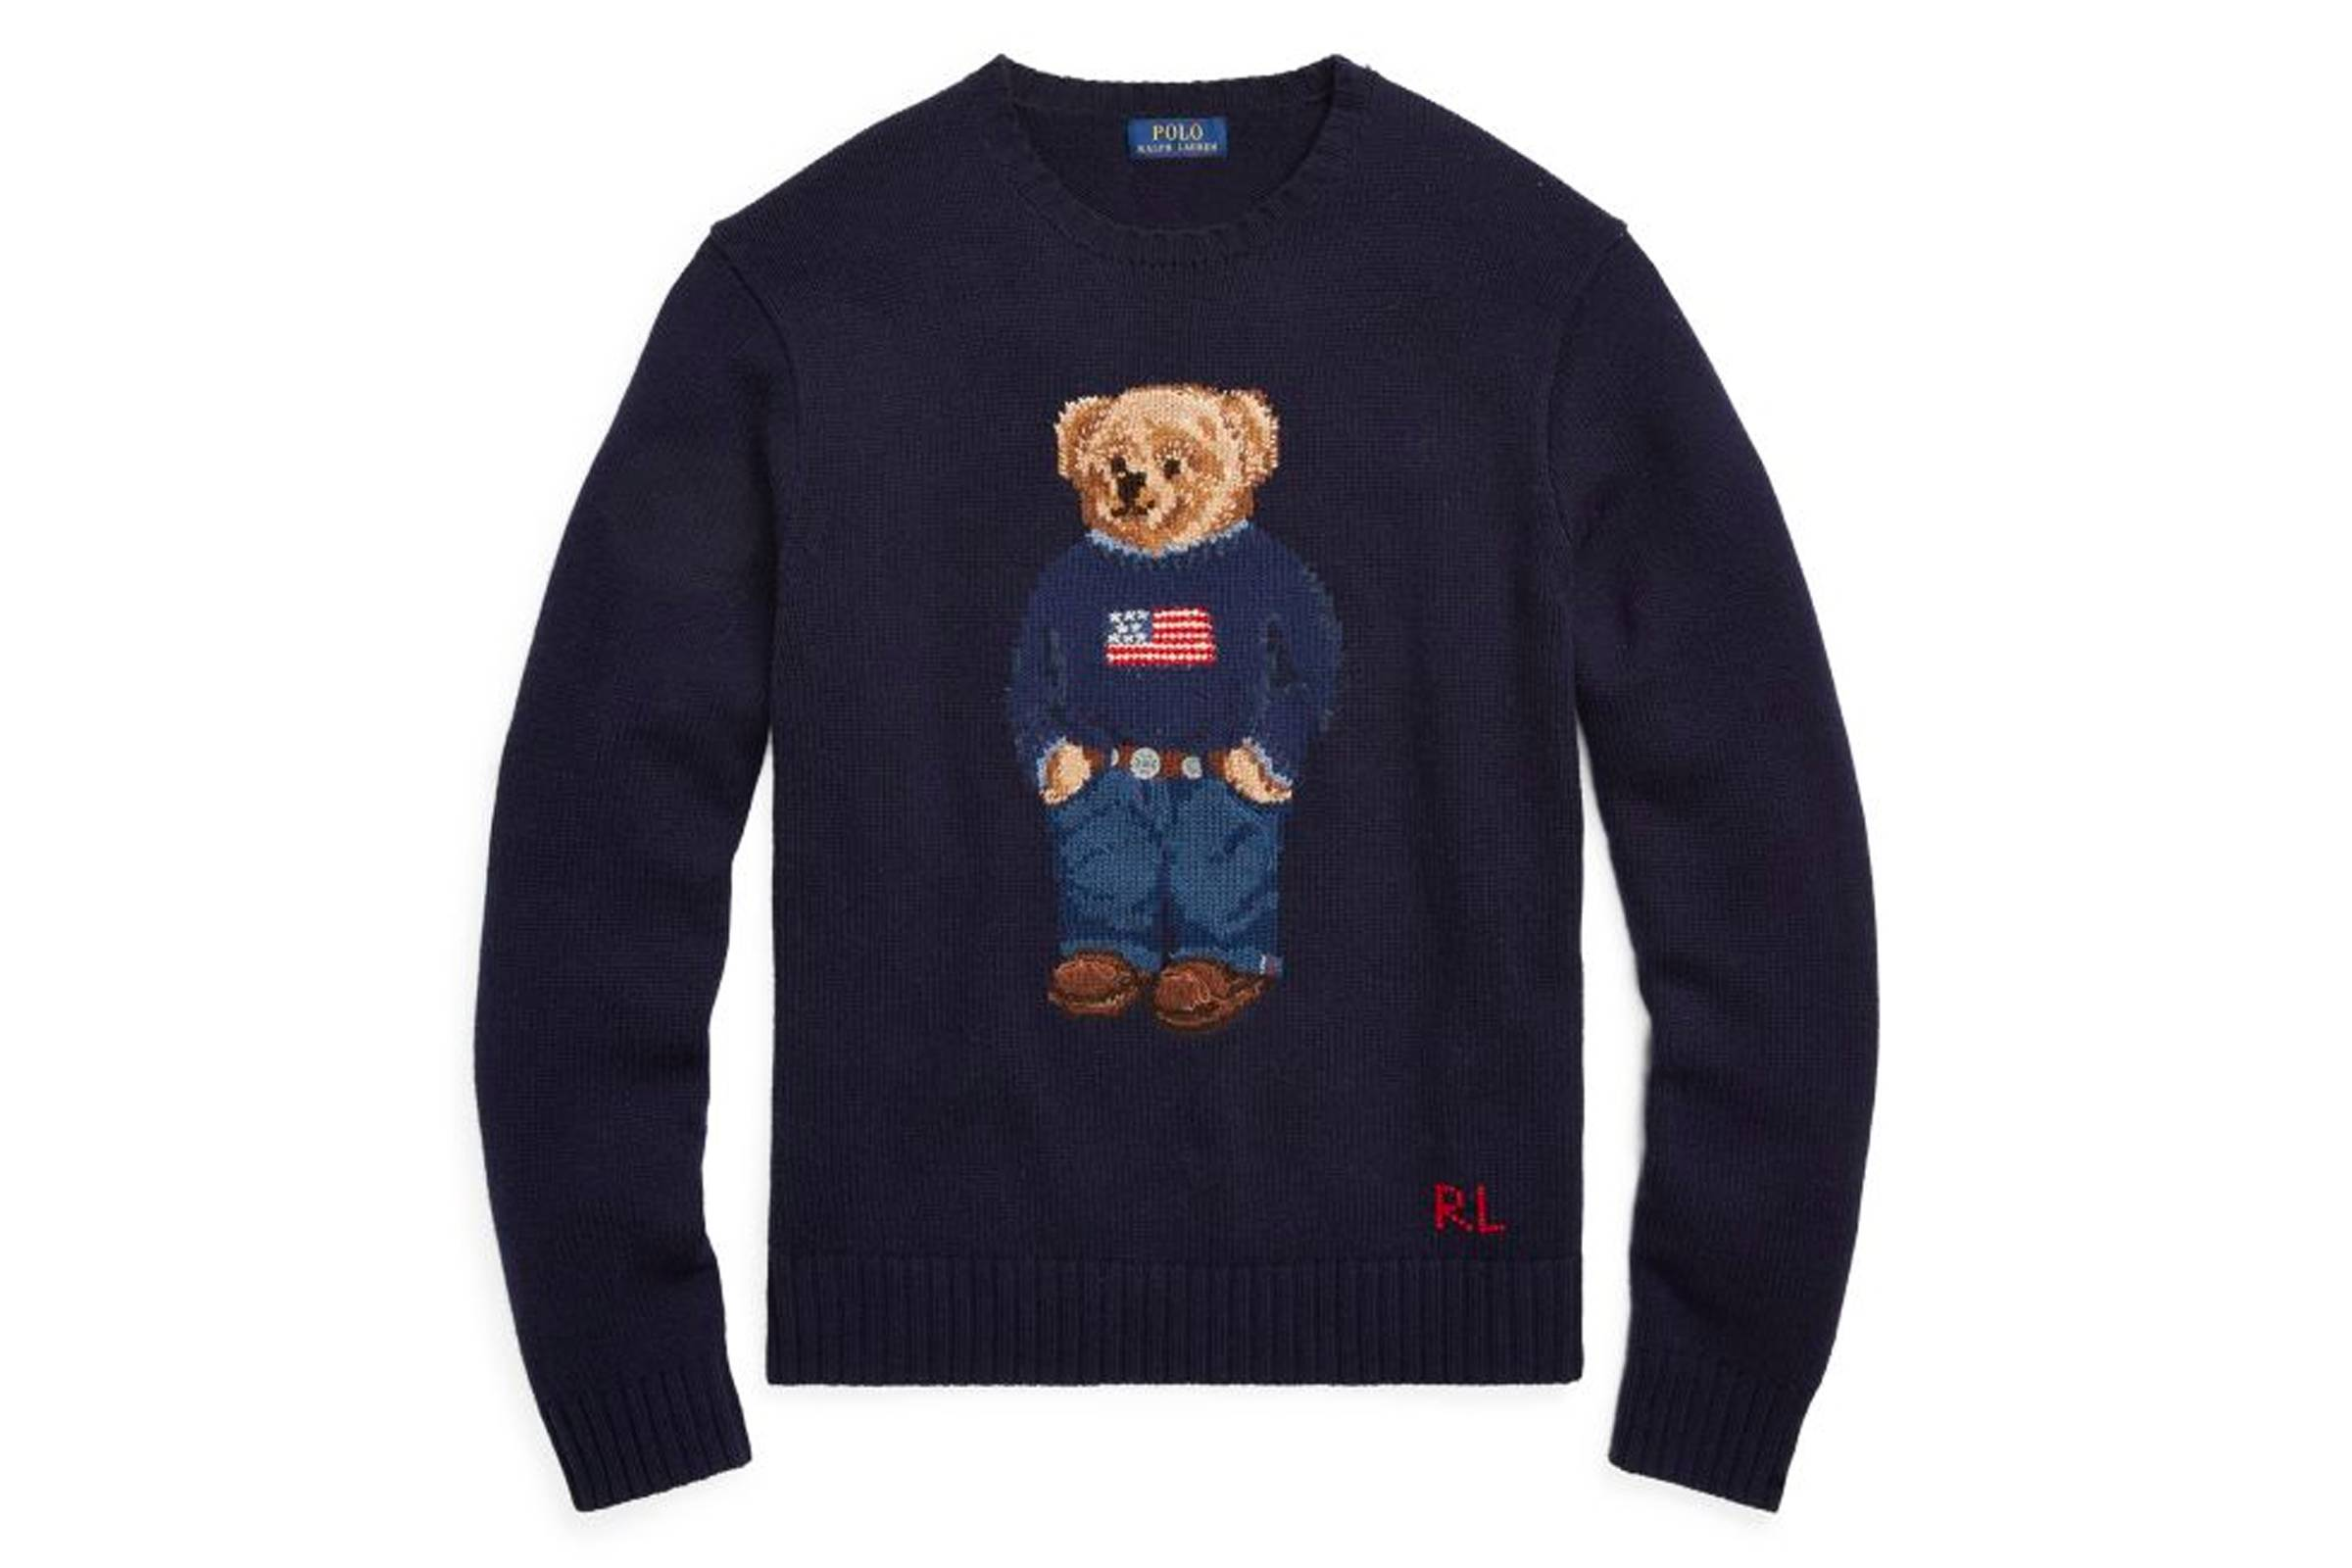 824ed4fac6 An Abridged History of The Polo Bear - Ralph Lauren Polo Bear ...